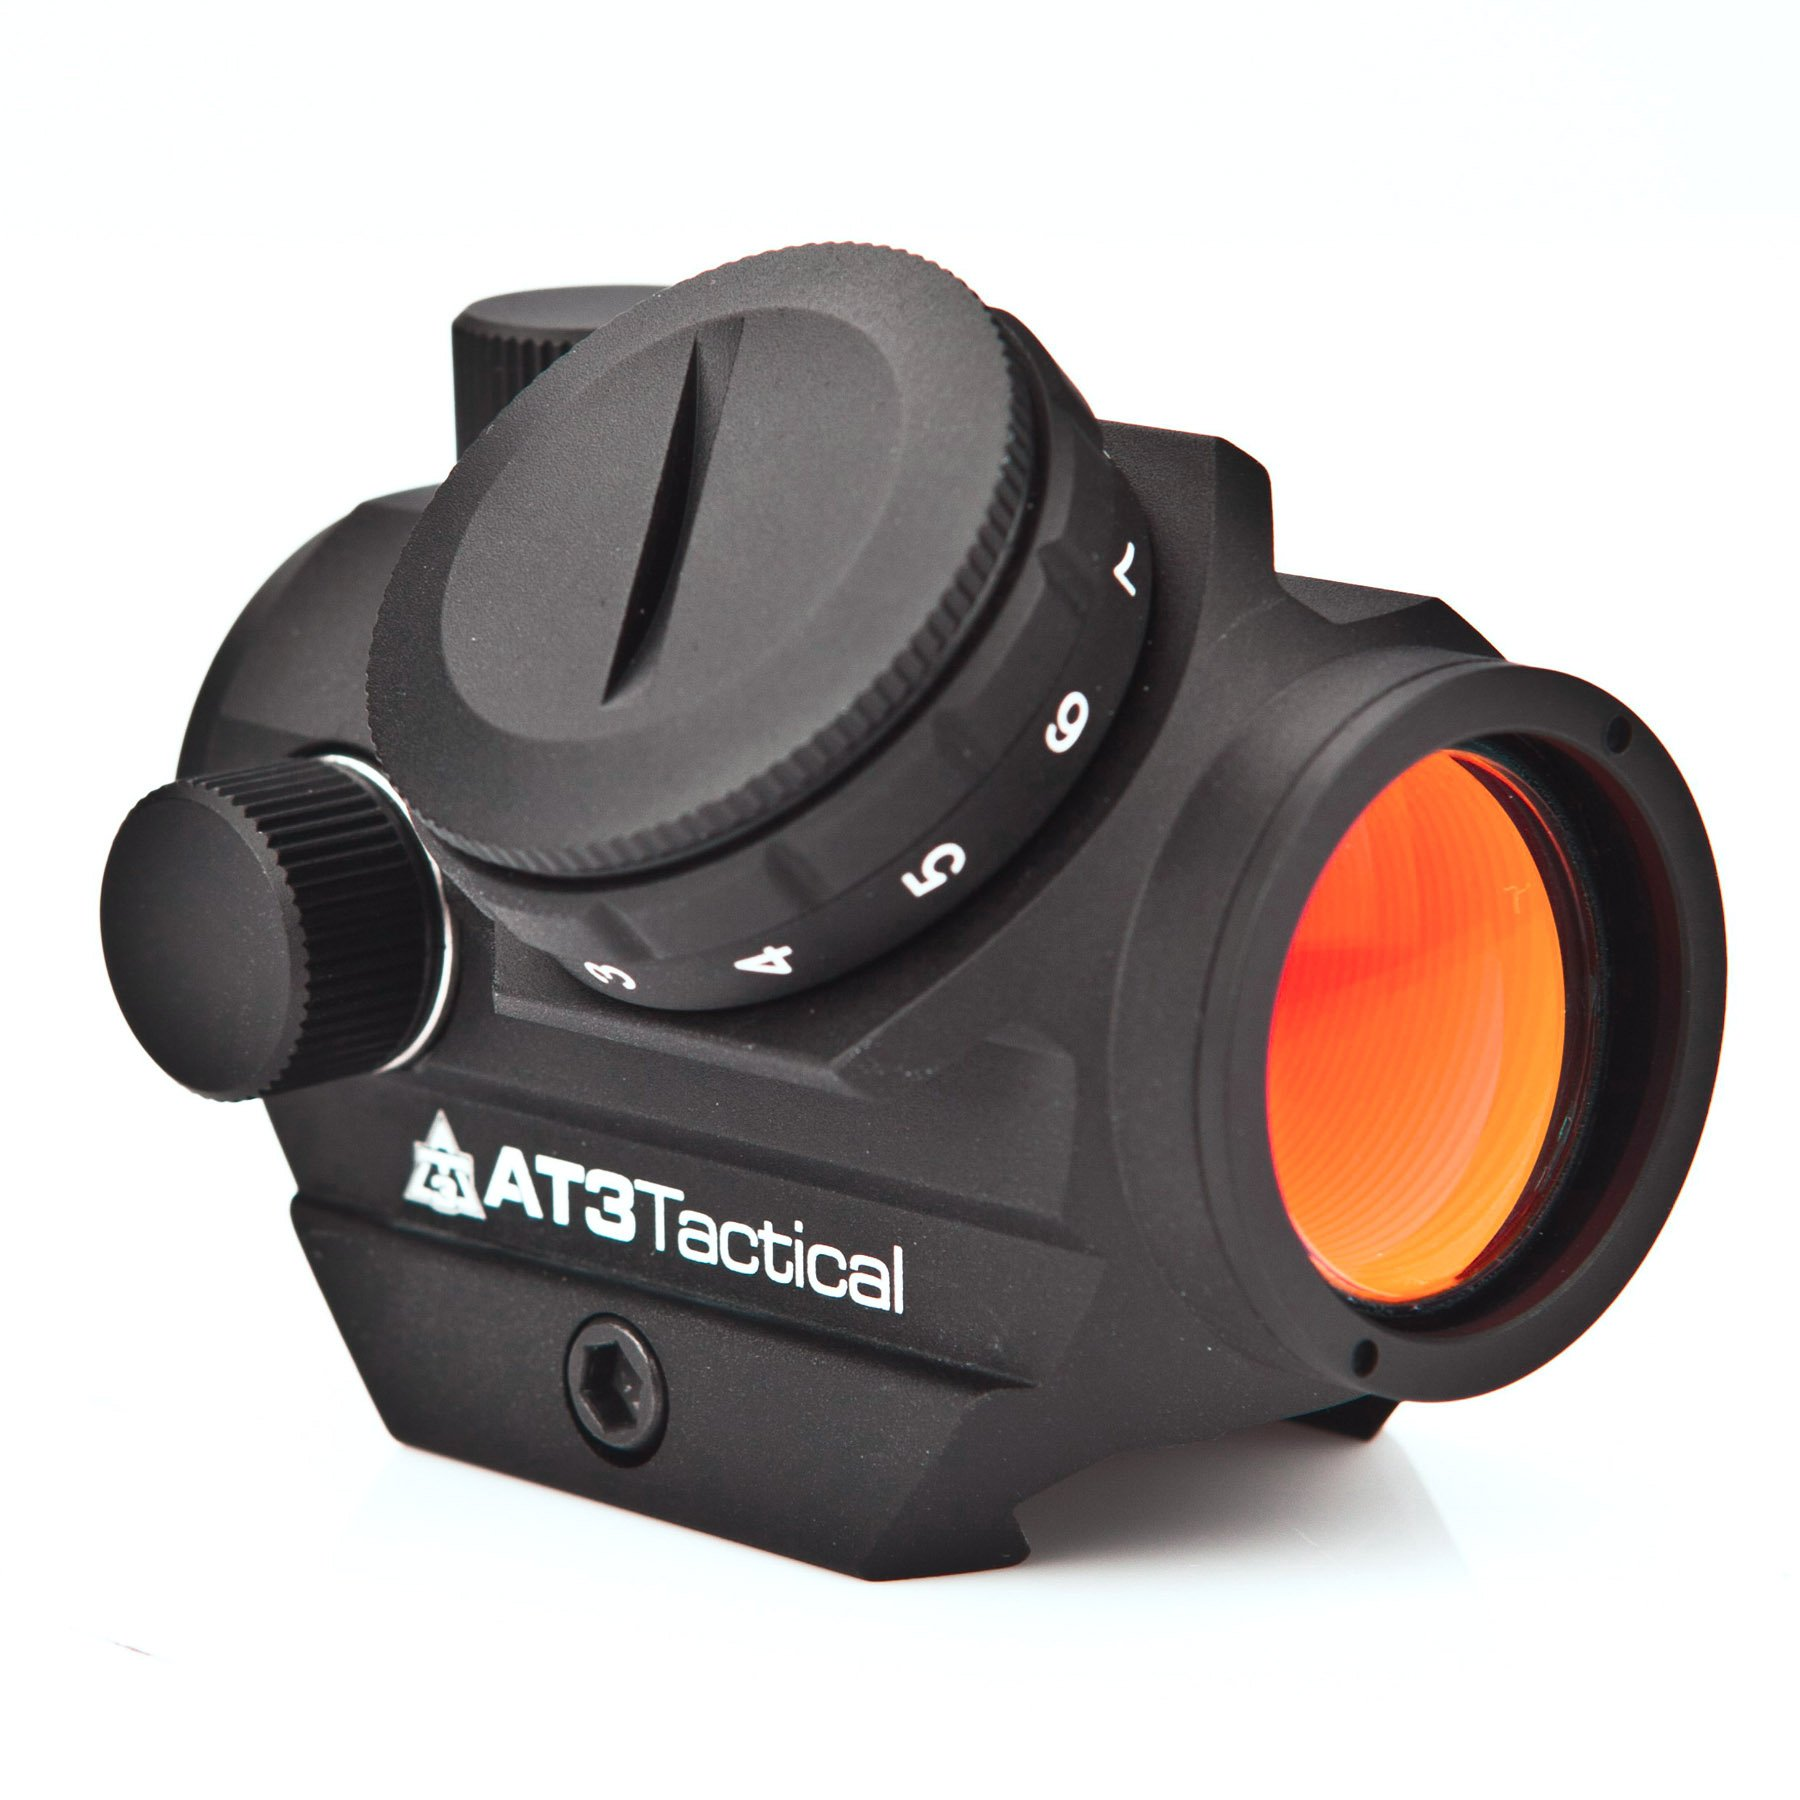 AT3 Tactical RD-50 Micro Reflex Red Dot Sight - 2 MOA Compact Red Dot Scope